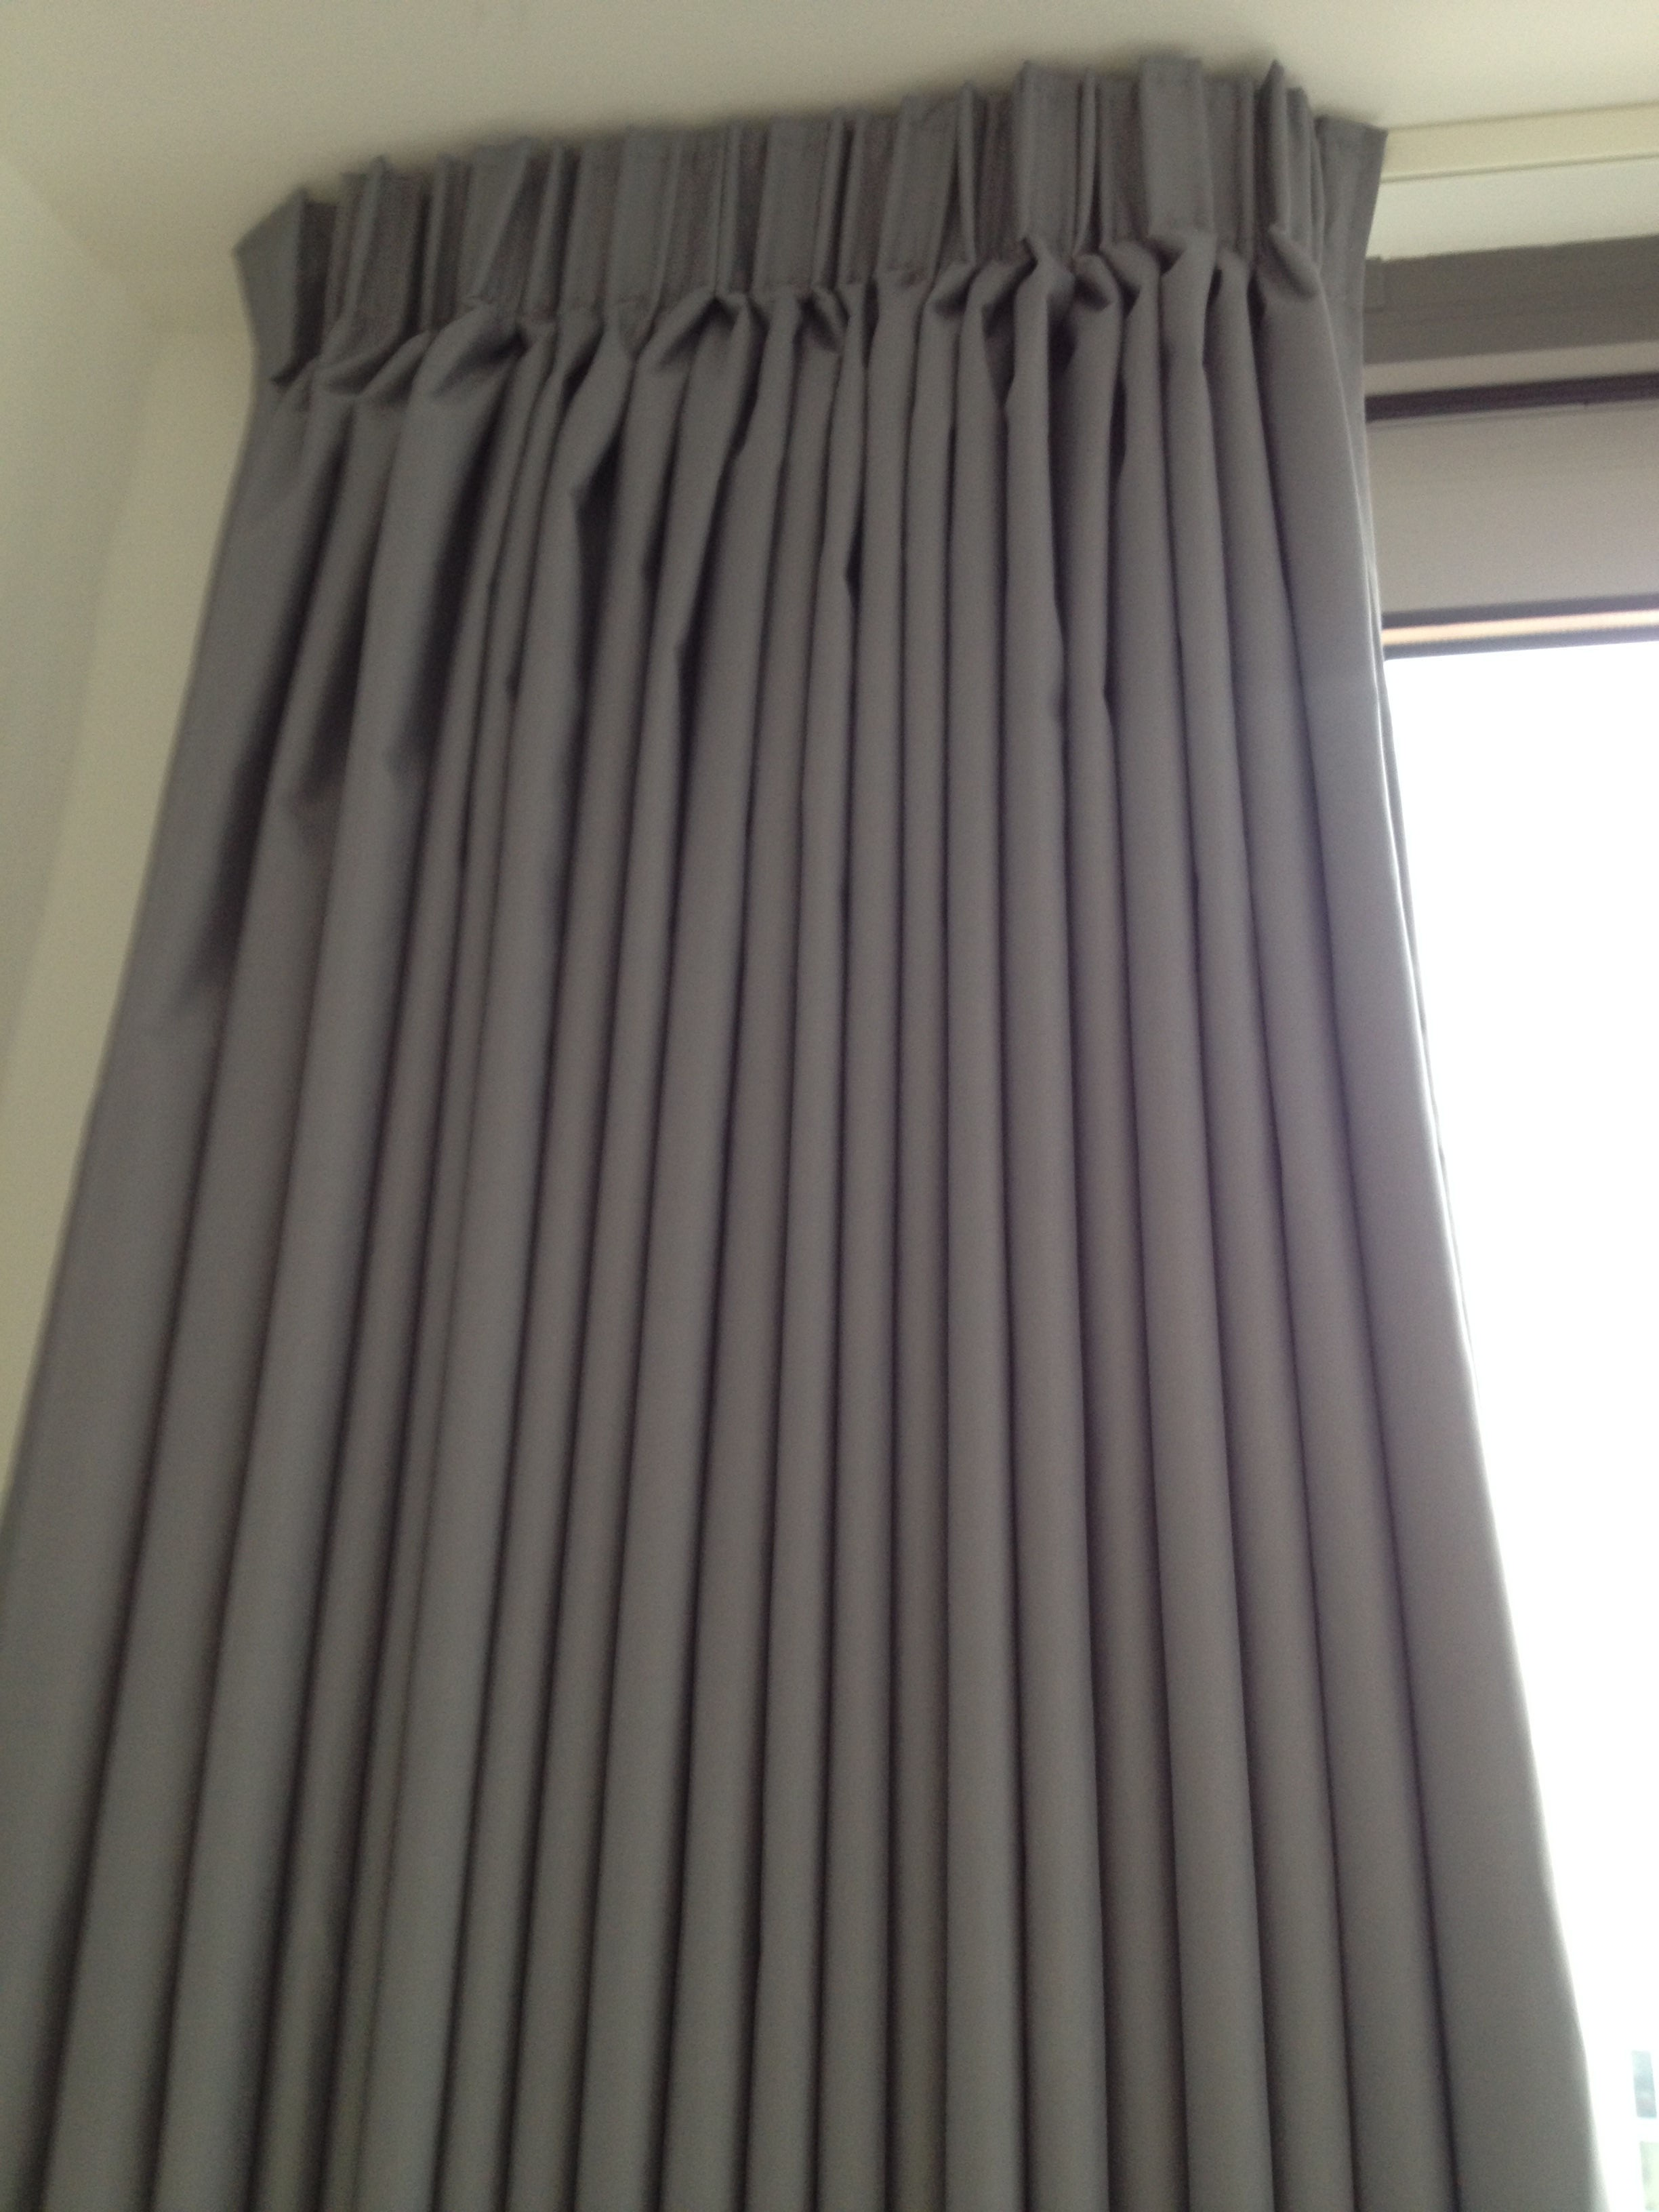 Direct fabrics blog direct fabrics - Pictures of curtains ...